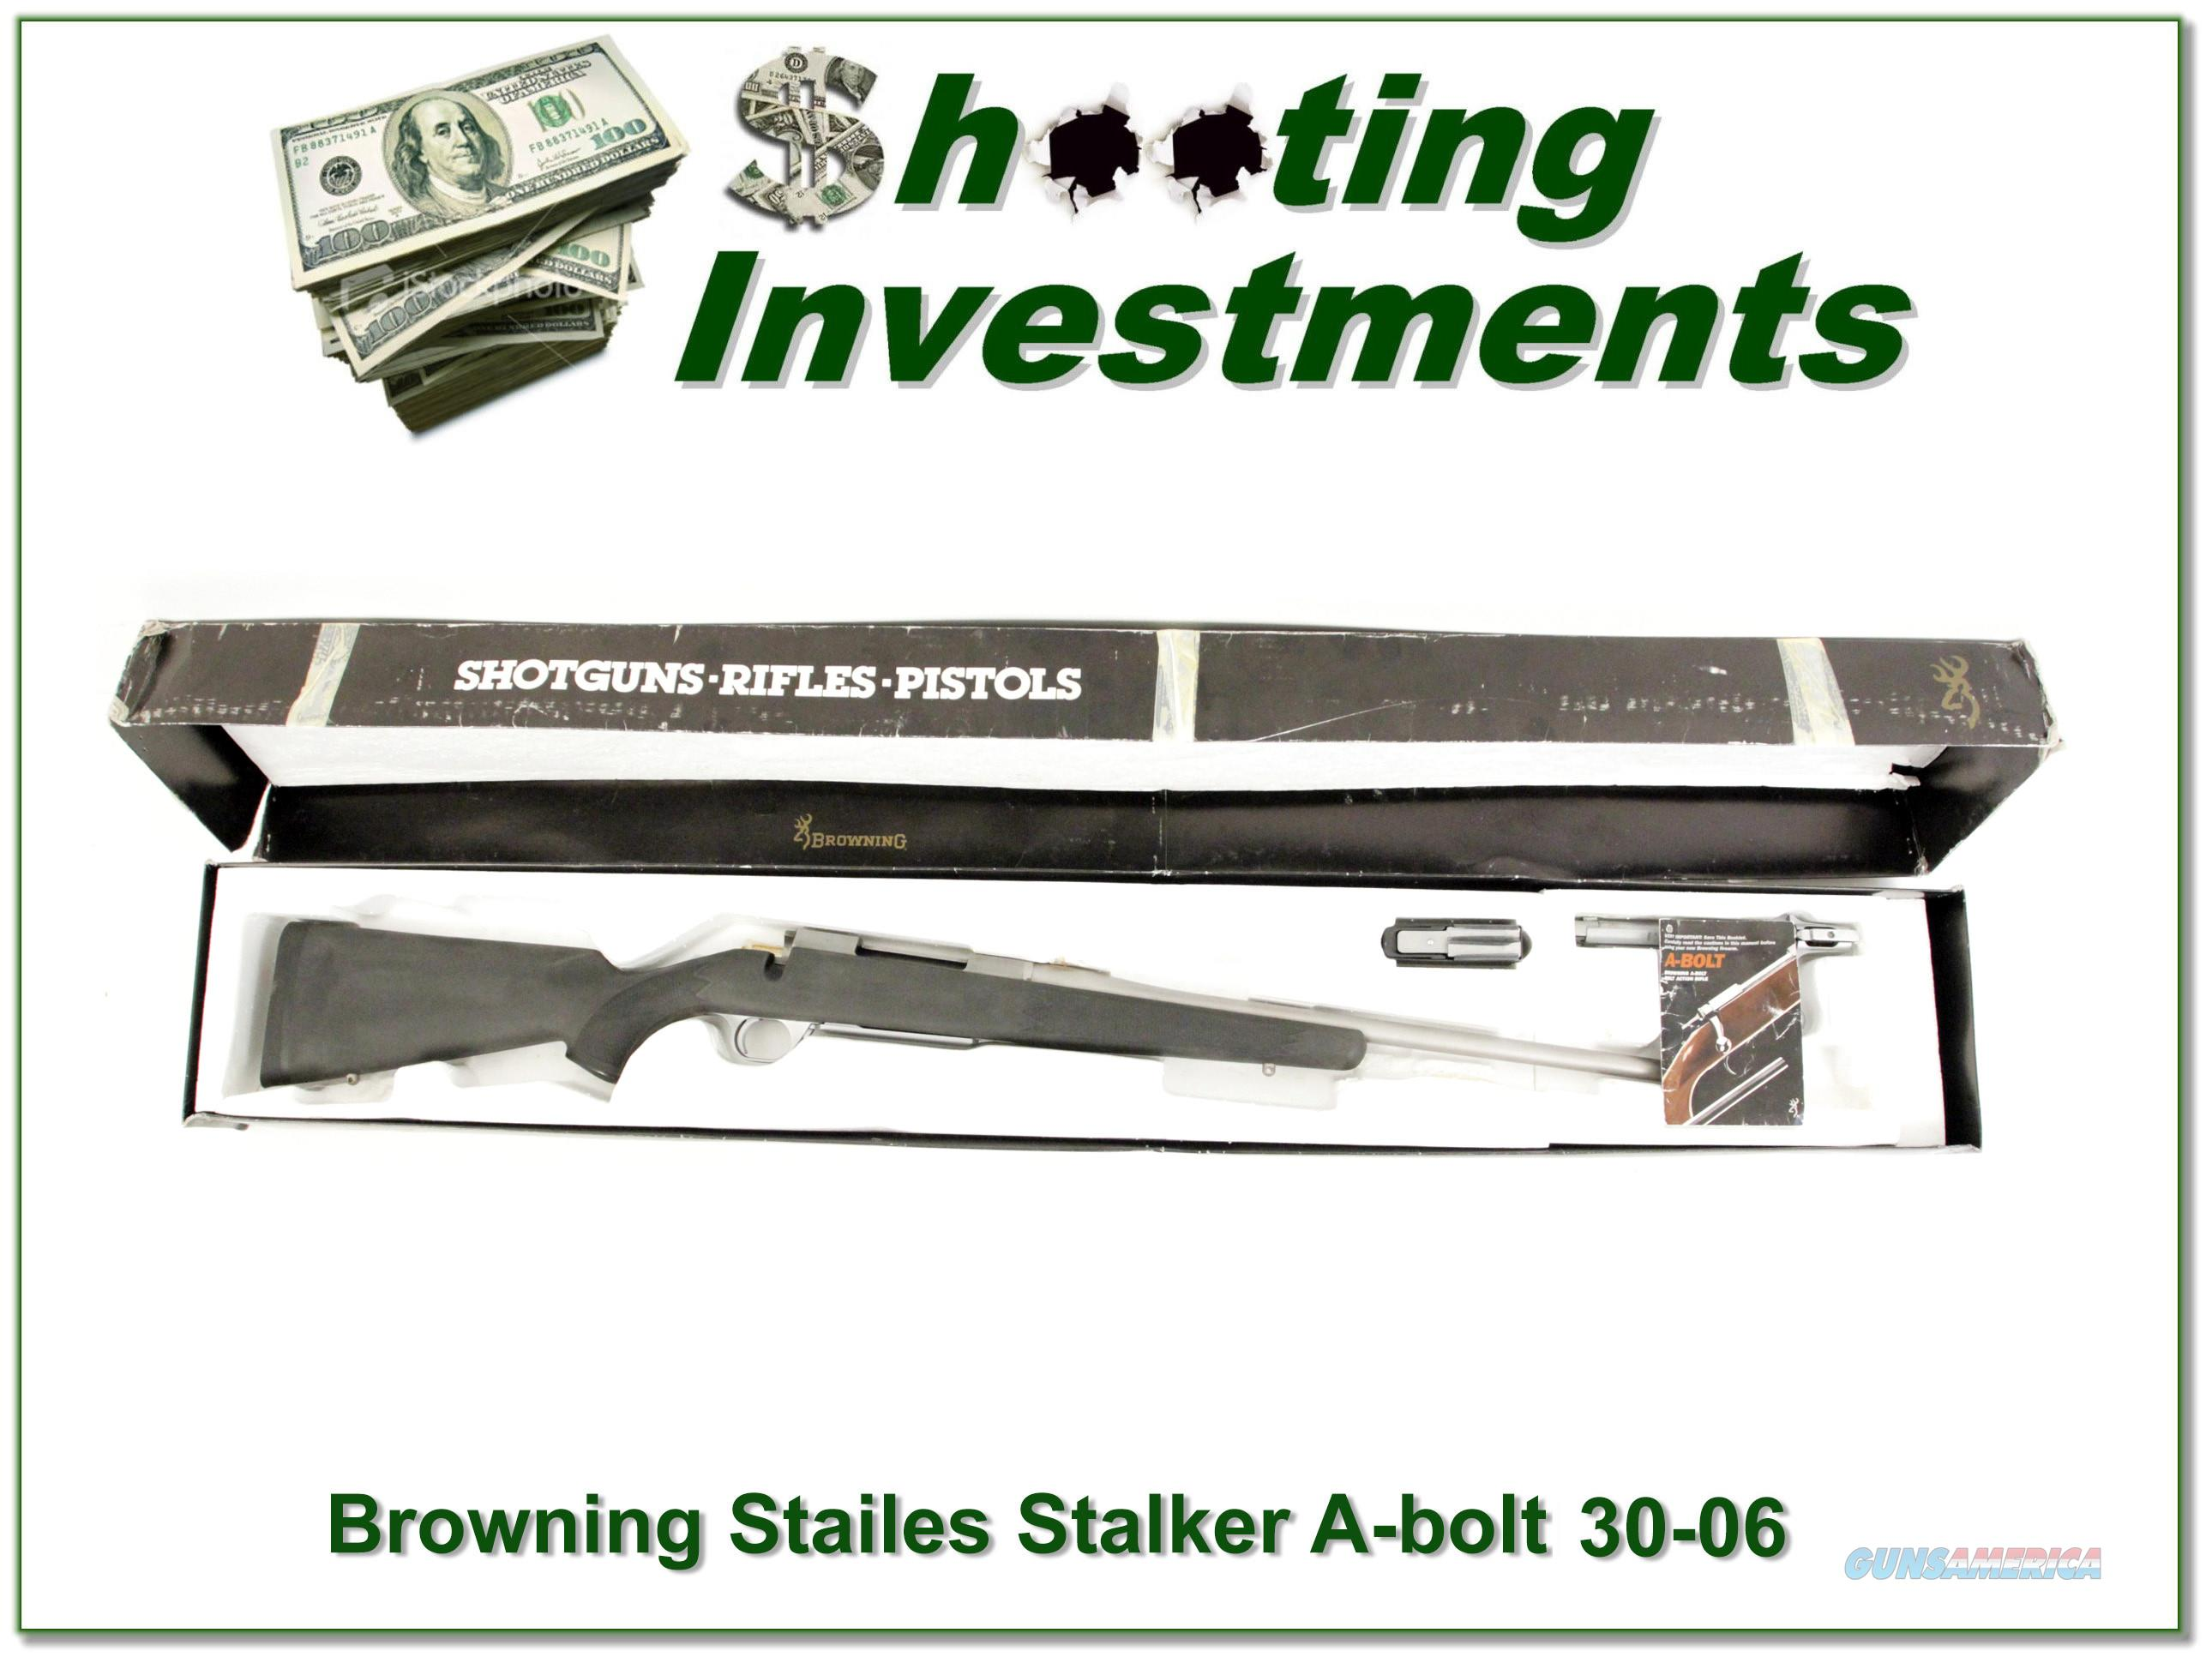 Browning A-bolt Stainless Stalker 30-06 NNIB  Guns > Rifles > Browning Rifles > Bolt Action > Hunting > Stainless